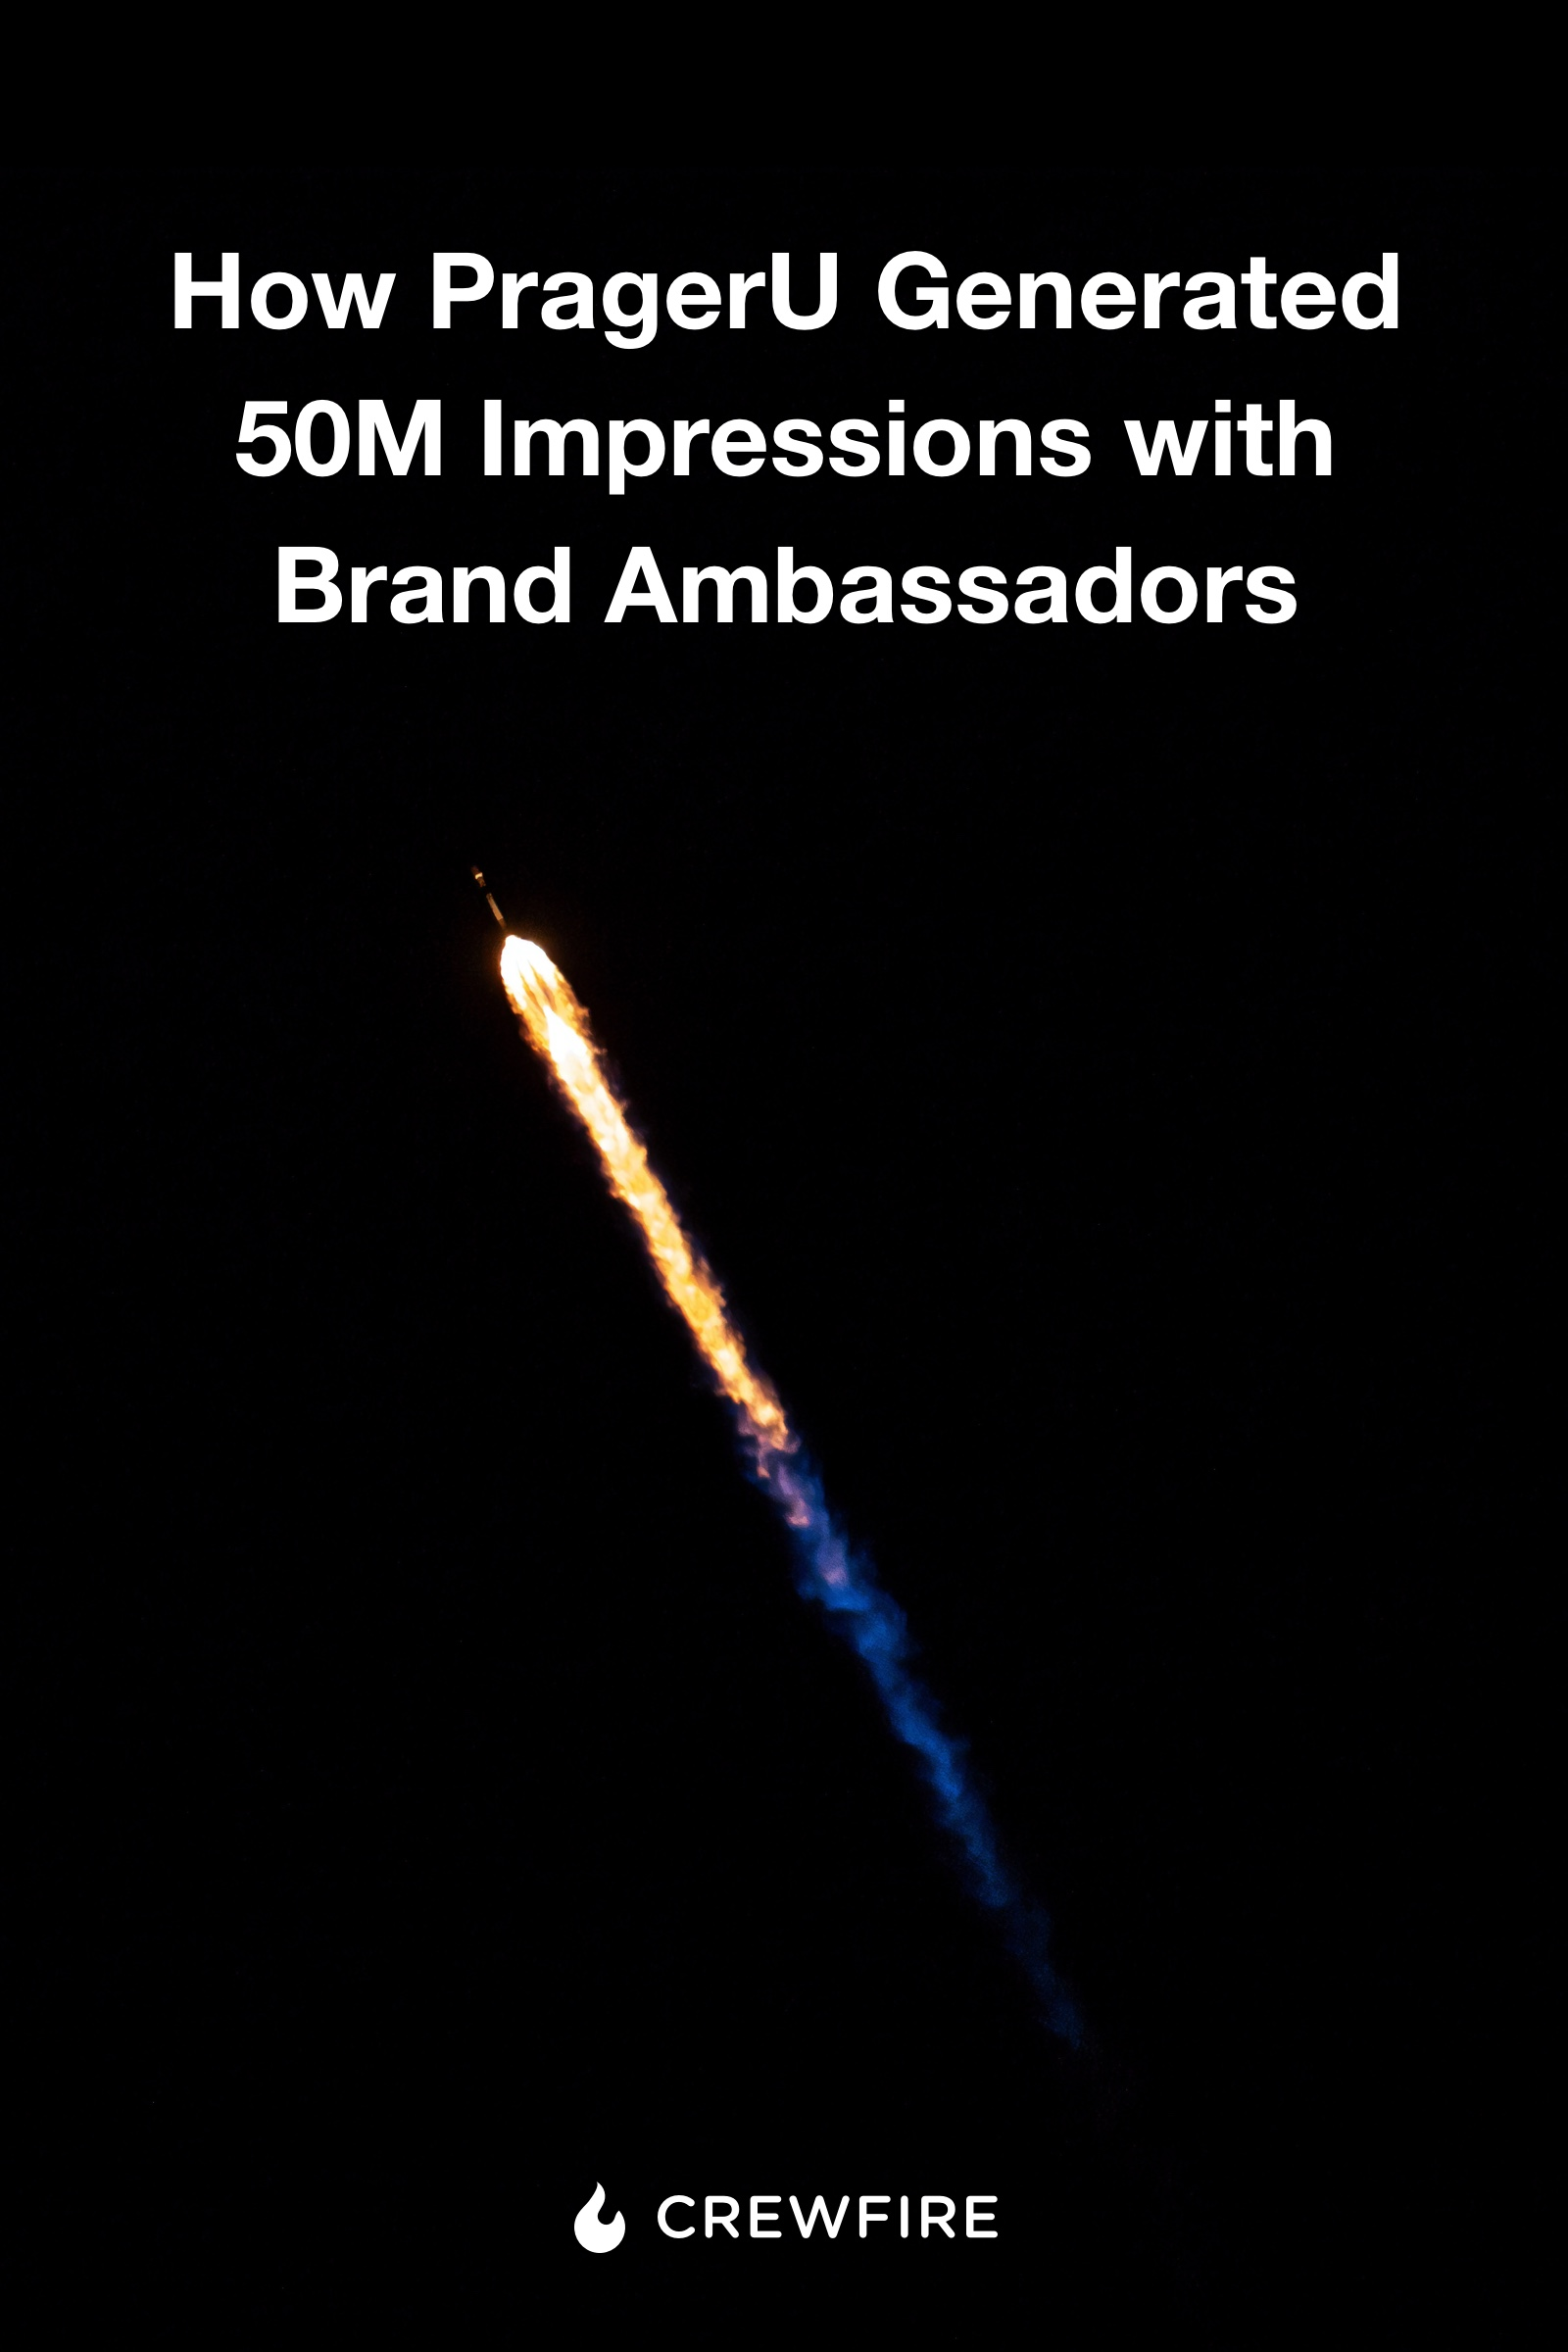 PragerU - How PragerU Generated 50M Impressions with Brand Ambassadors